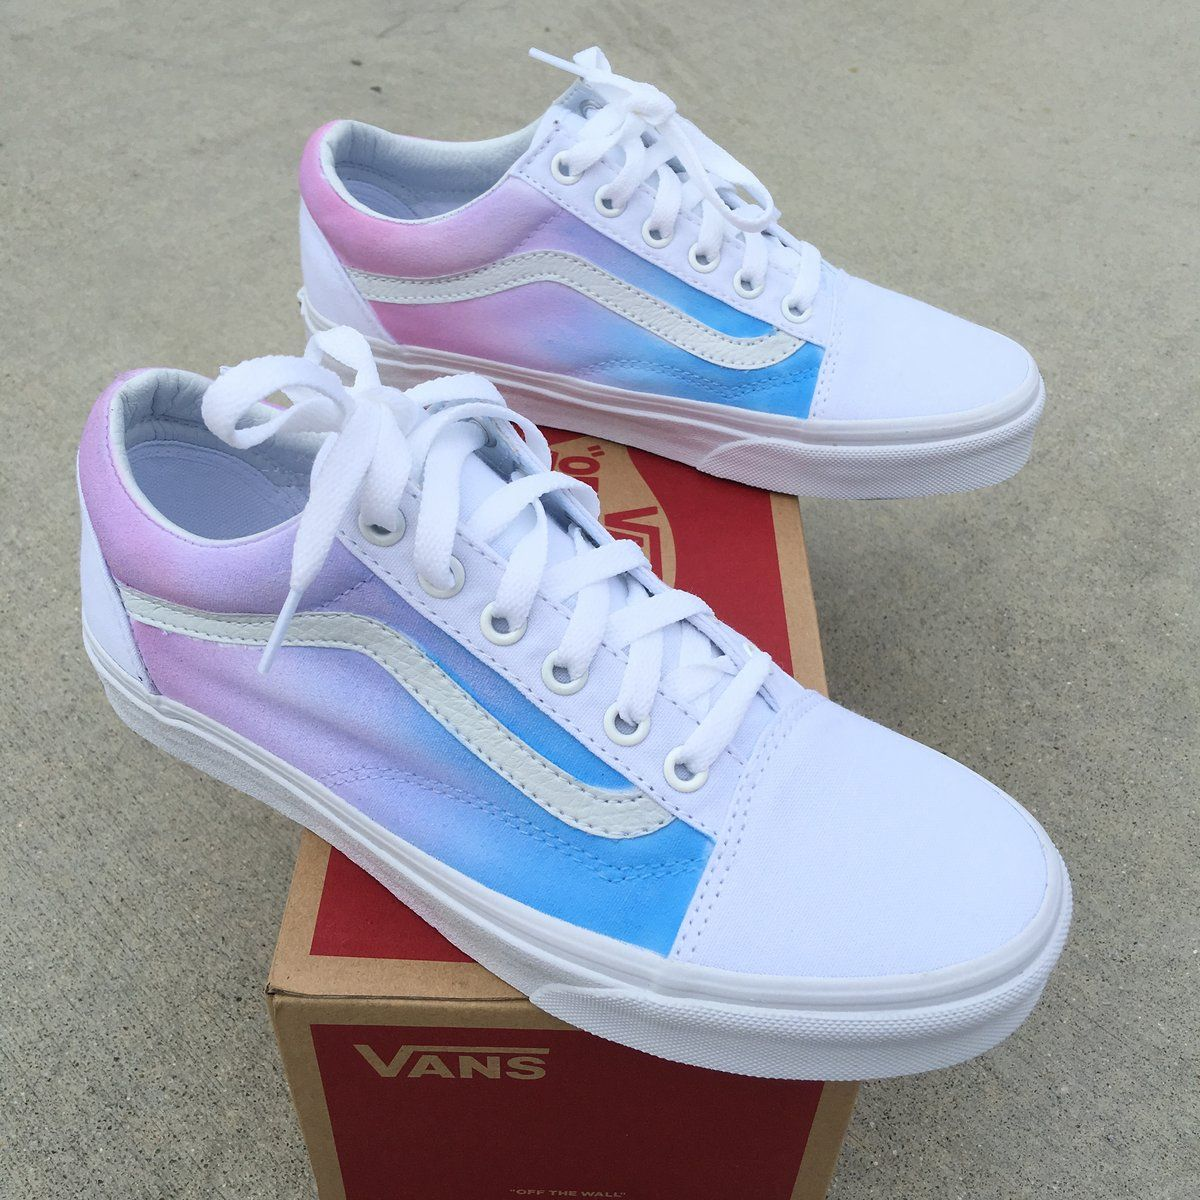 8f82a39f8 These True White Vans Old Skool Sneakers have been painted with a pastel  color ombre gradient on the sides of the shoes. The light blue color starts  towards ...